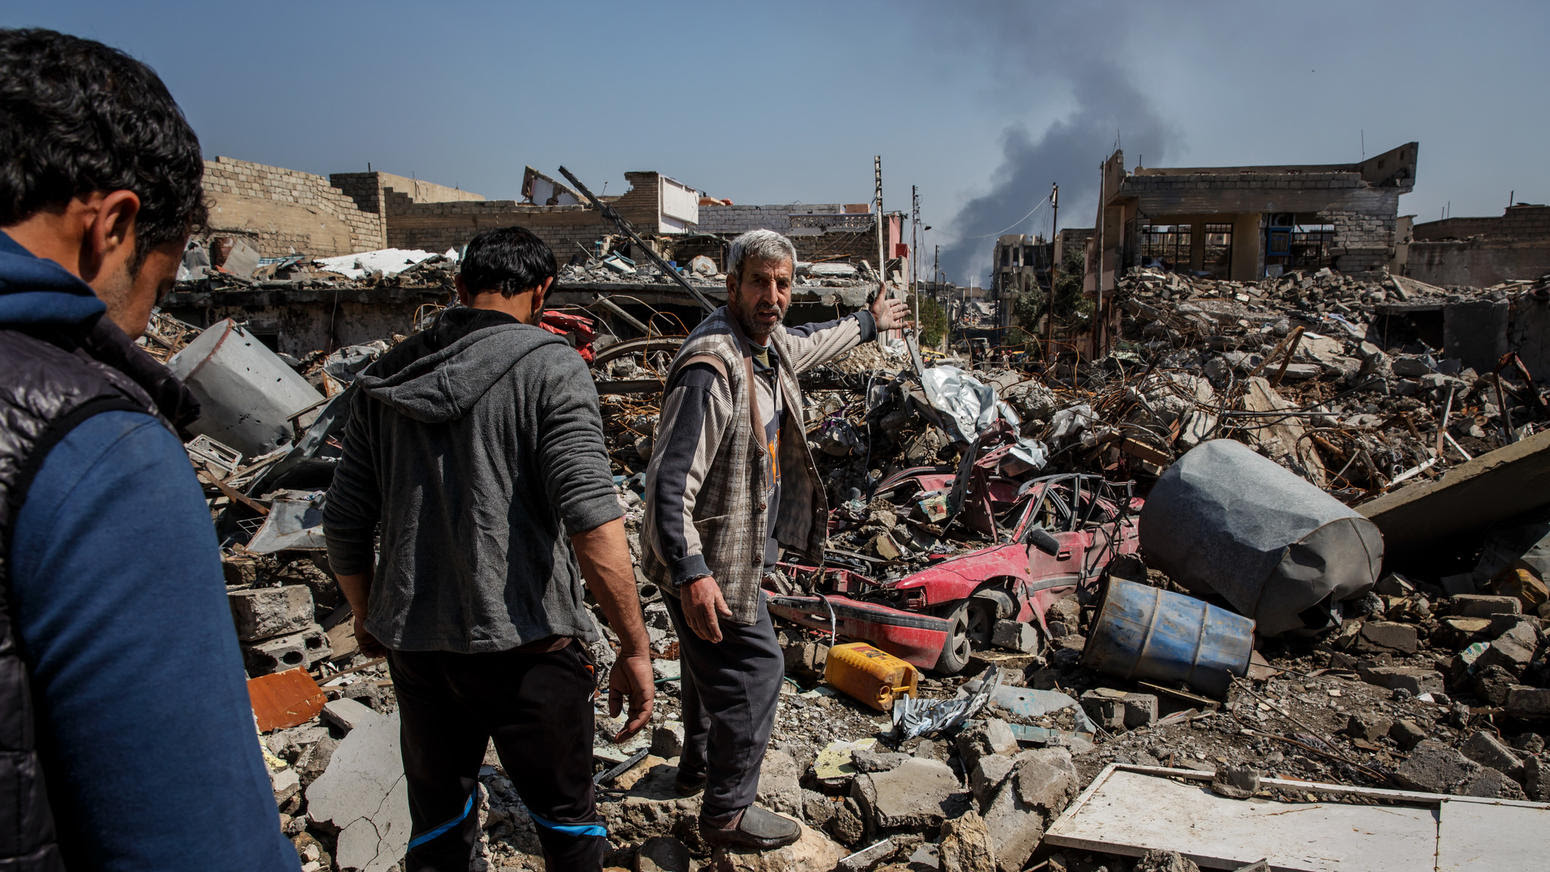 Deadly airstrike kills scores in Mosul